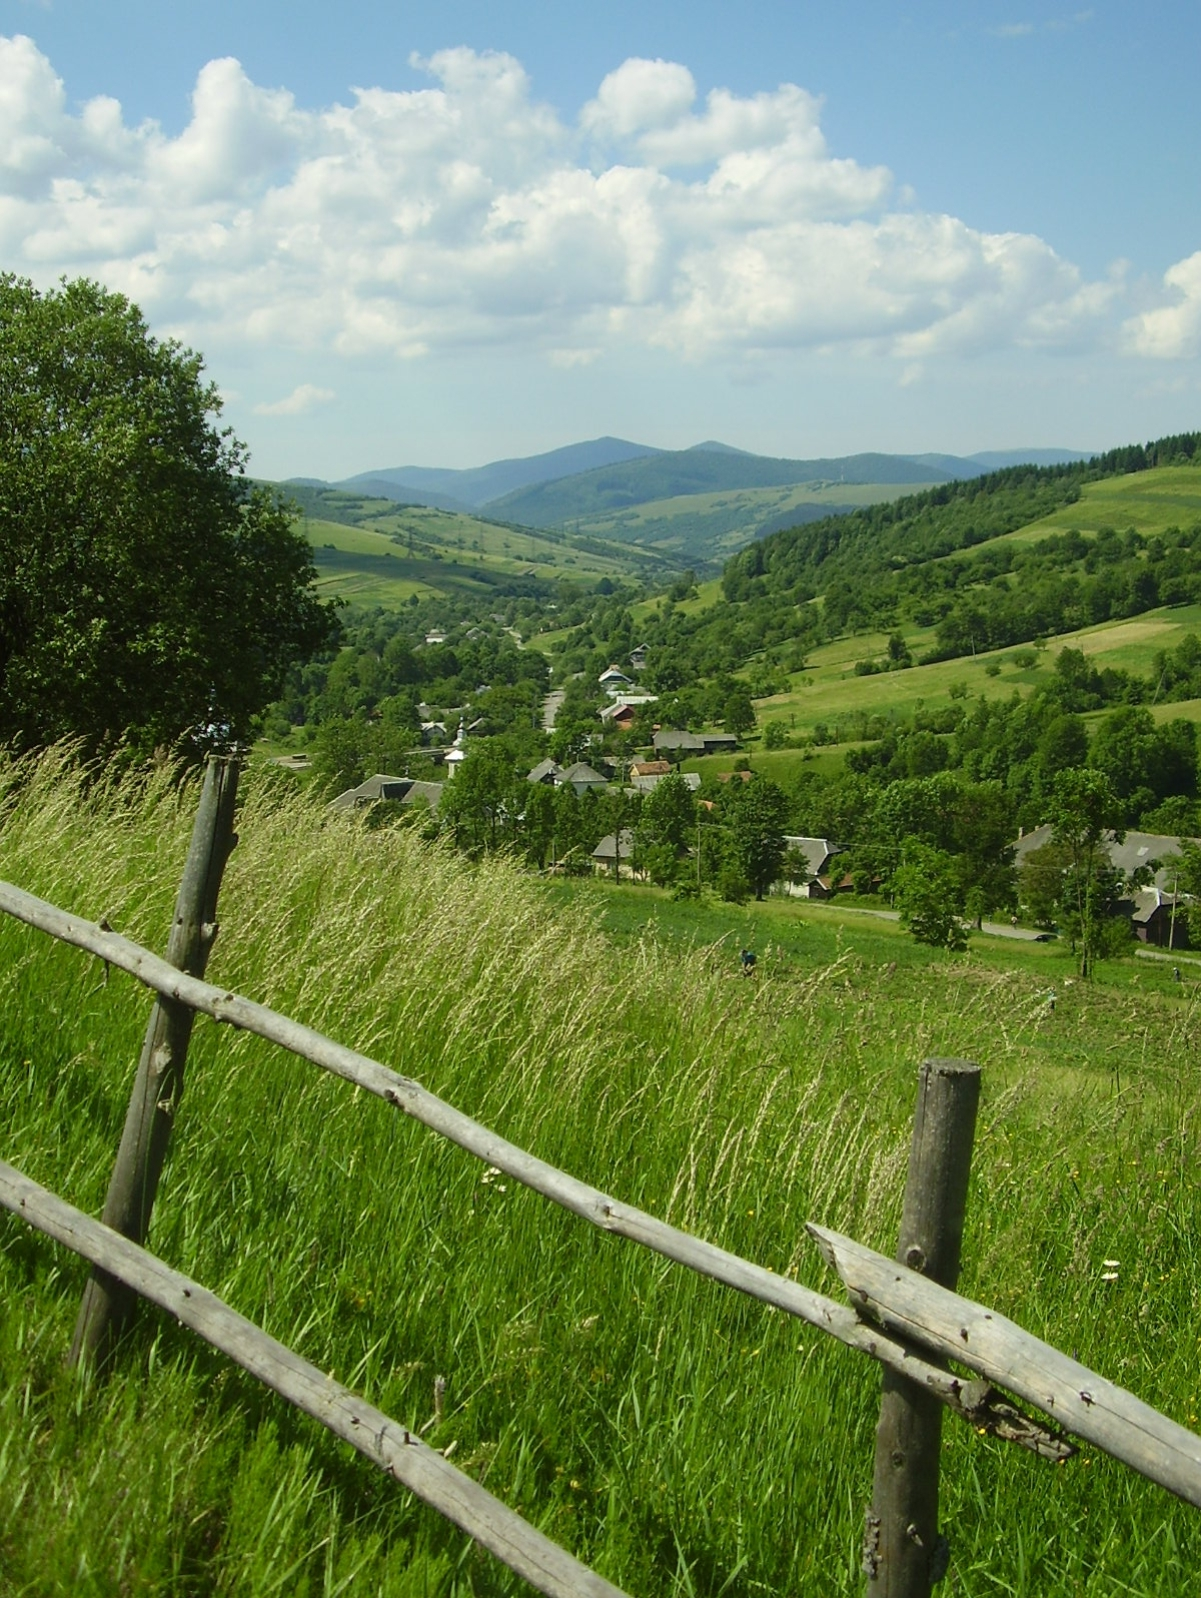 Transcarpathian view by Alexander Stemp